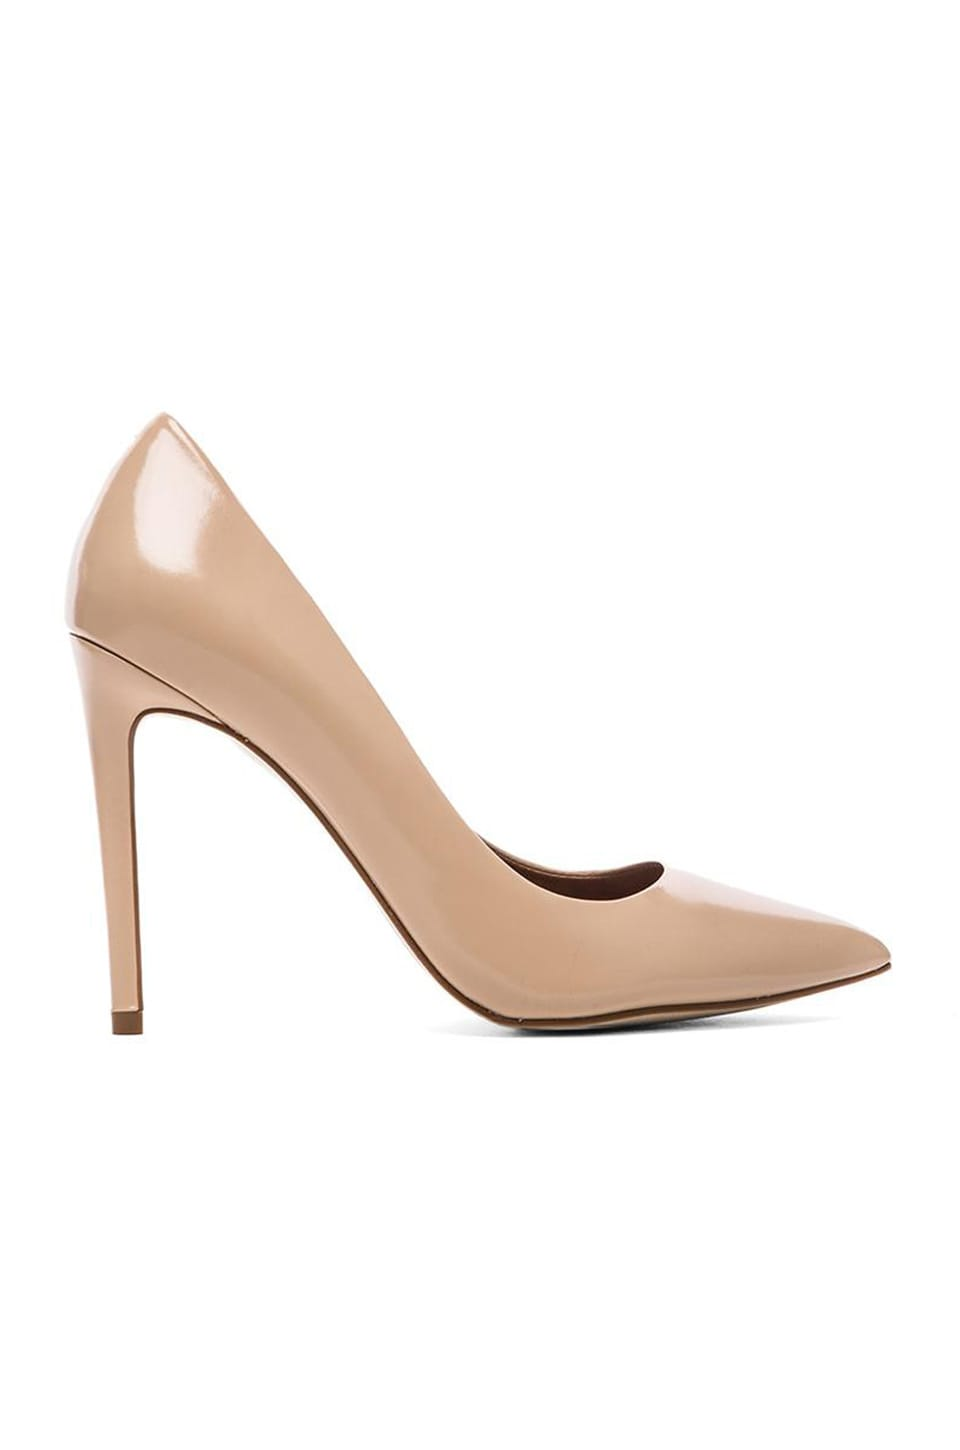 Steve Madden Proto Heel in Blush Leather